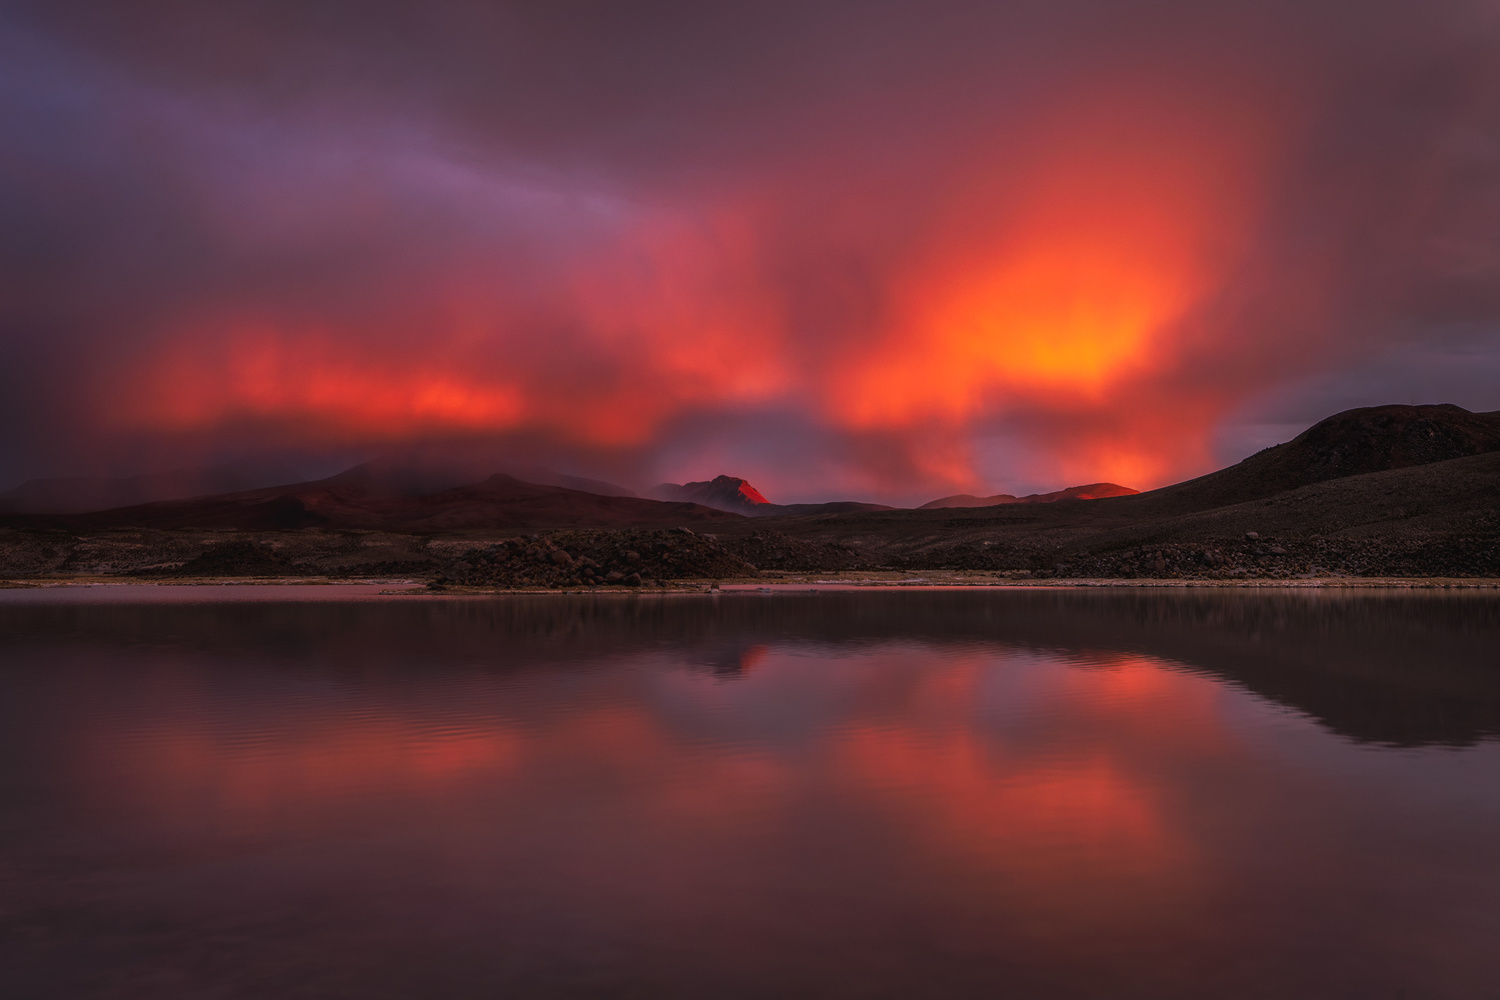 Red rain by Andres Puiggros